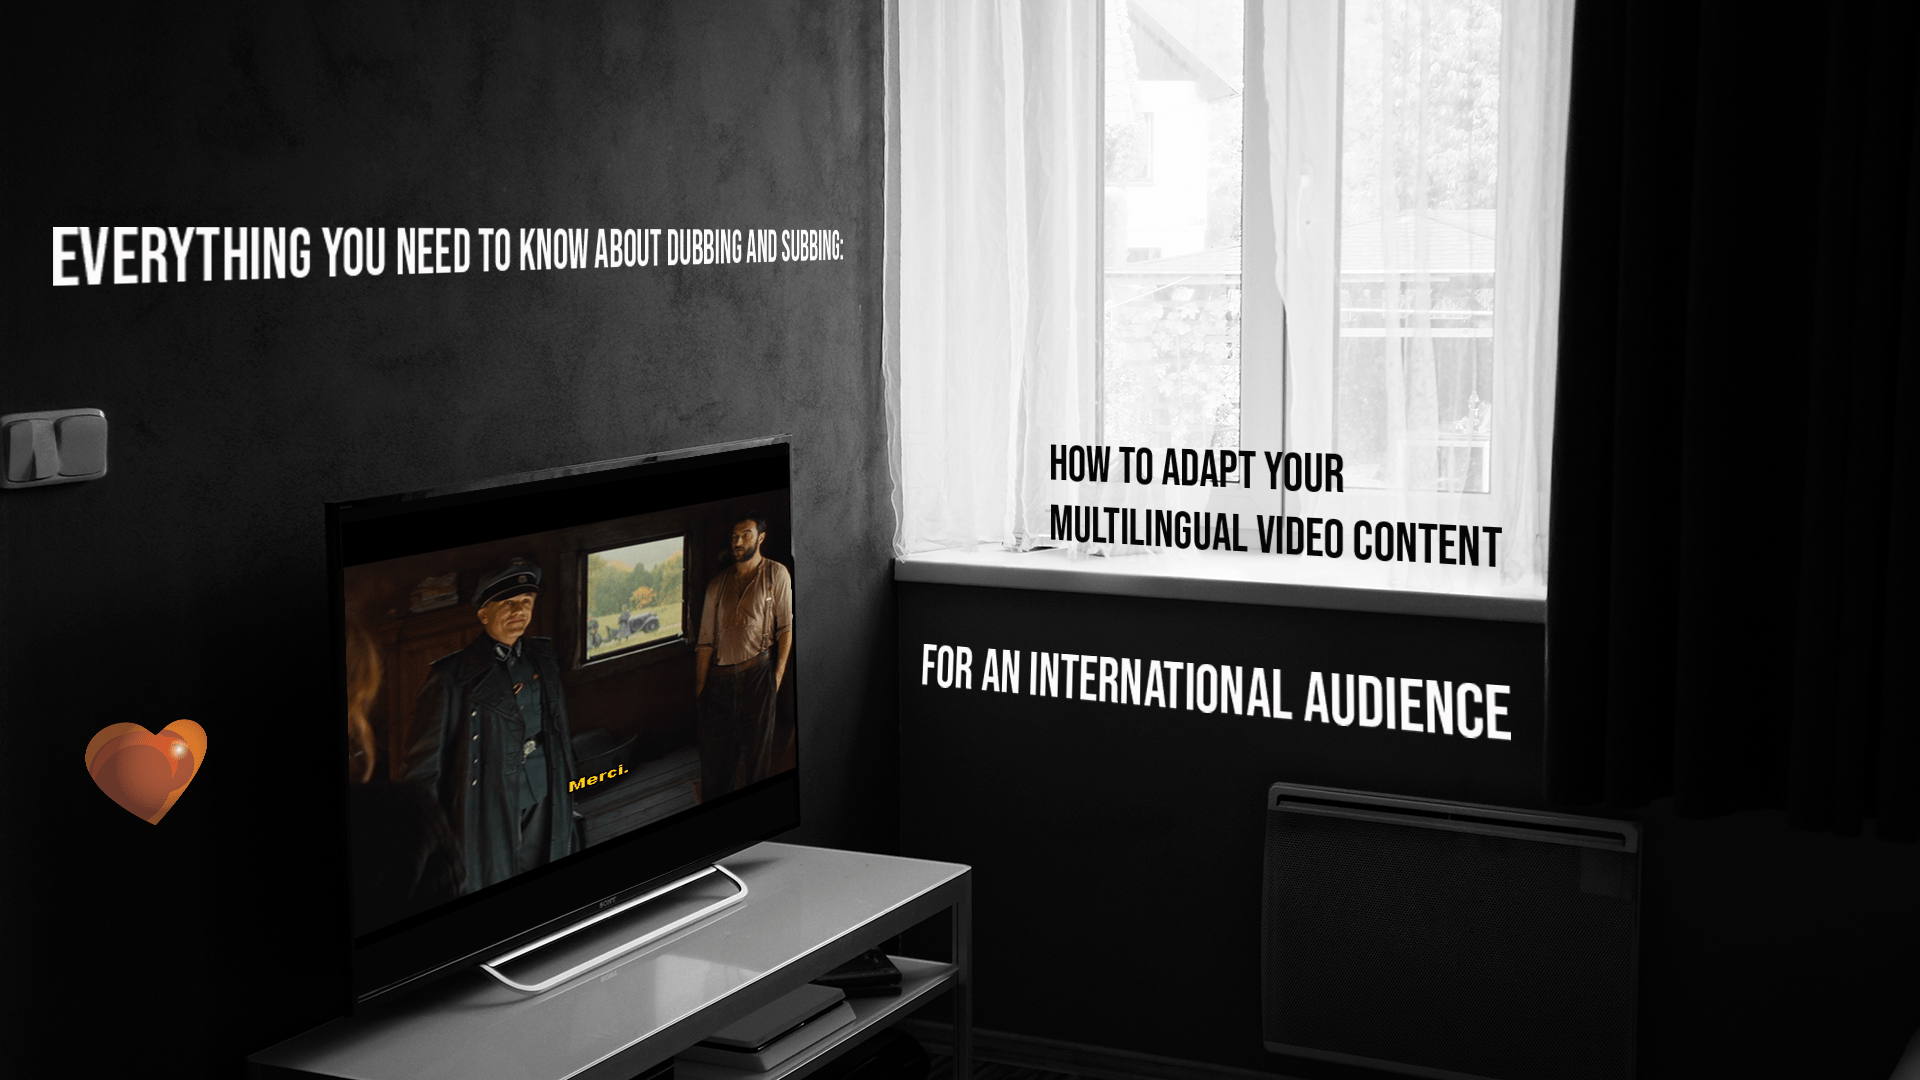 Everything You Need to Know about Dubbing and Subbing: How to Adapt Your Multilingual Video Content for an International Audience - Watching Quentin Tarantino's Inglourious Basterds on TV